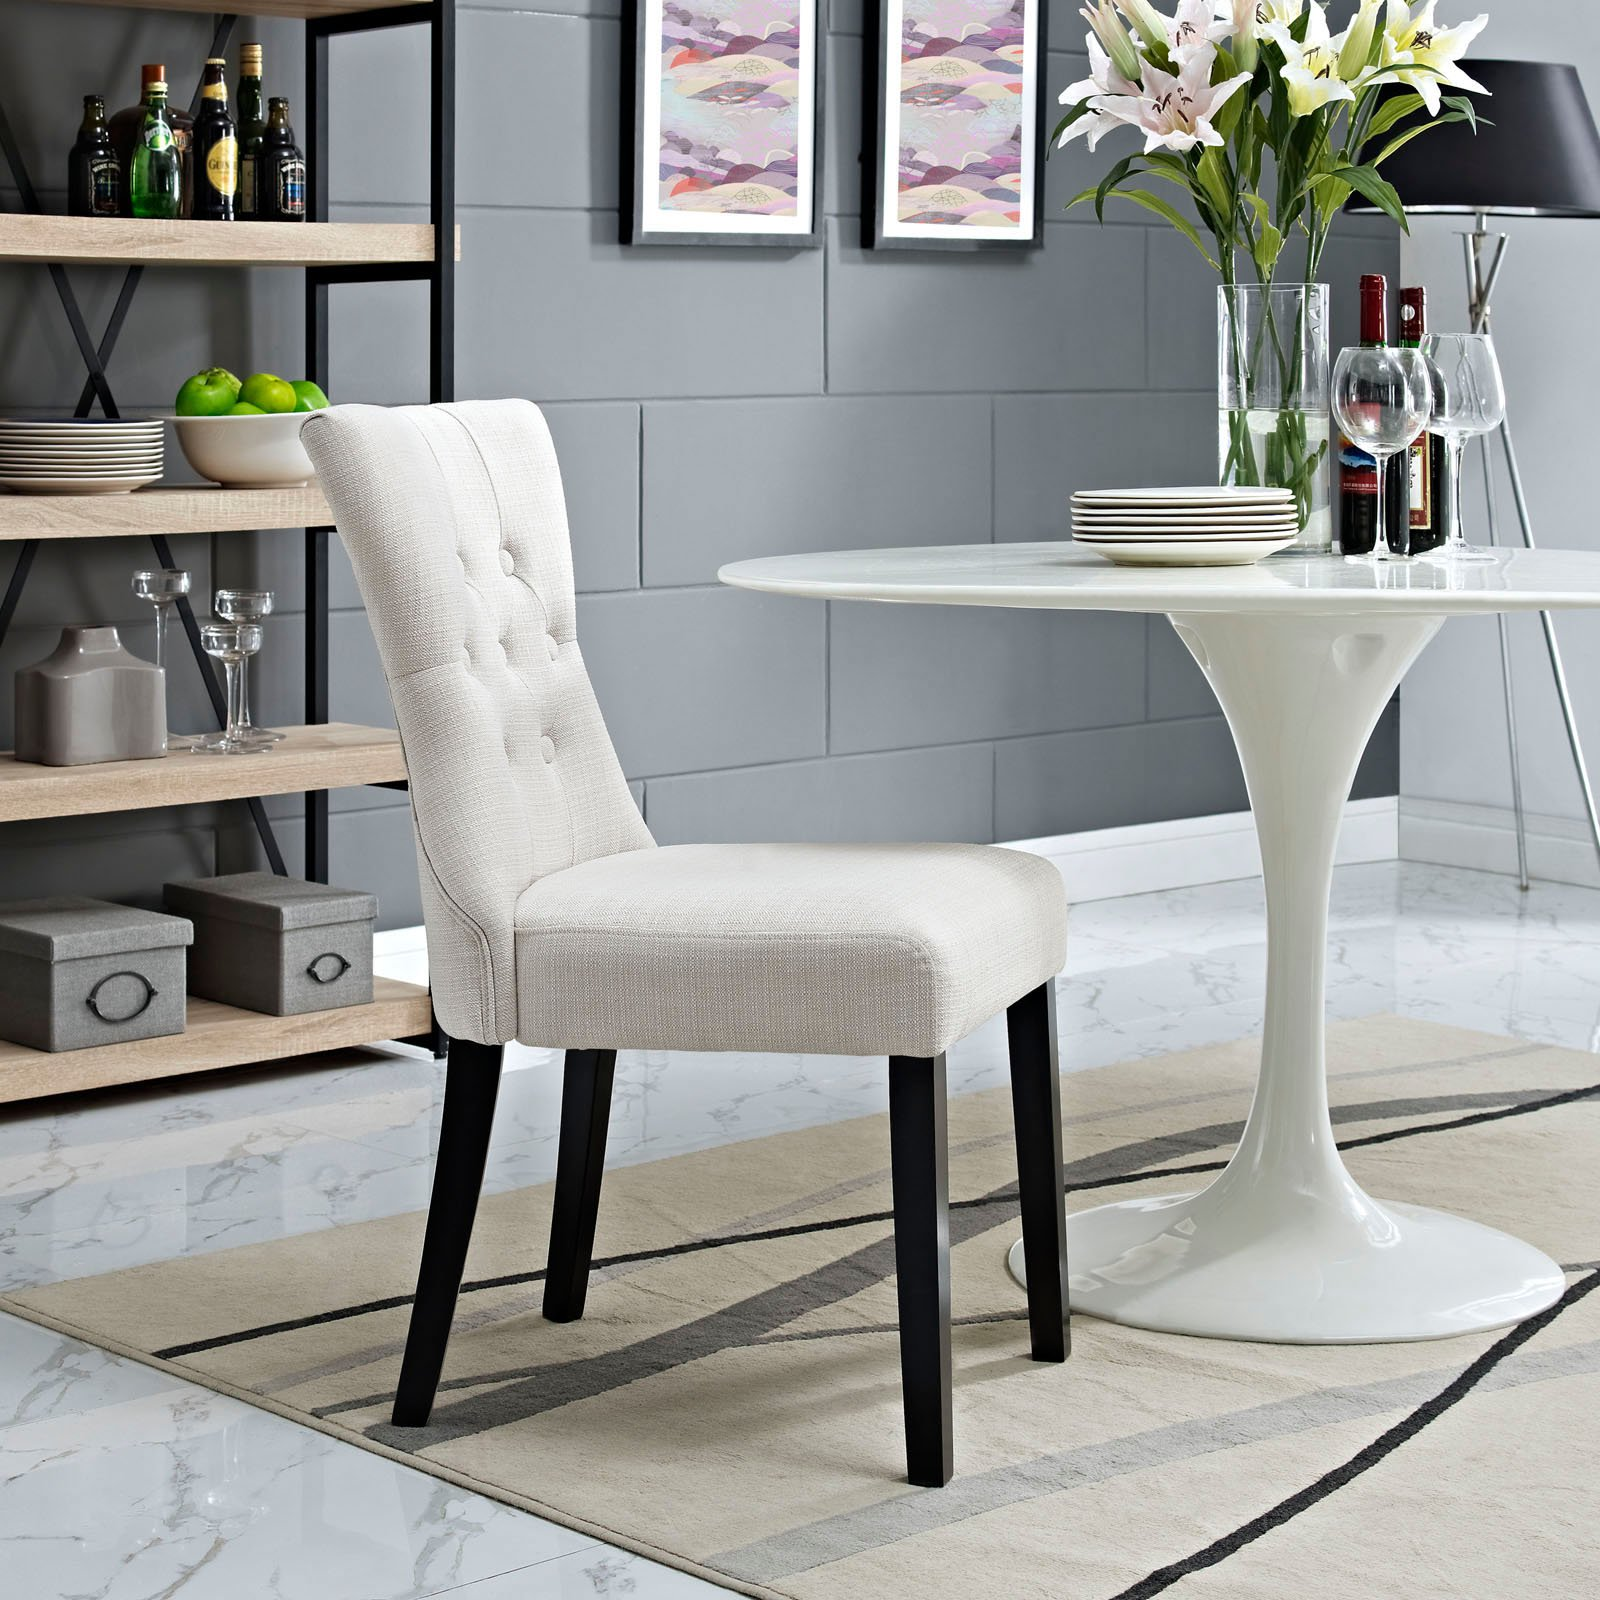 Modway Silhouette Dining Side Chair Multiple Colors Walmart